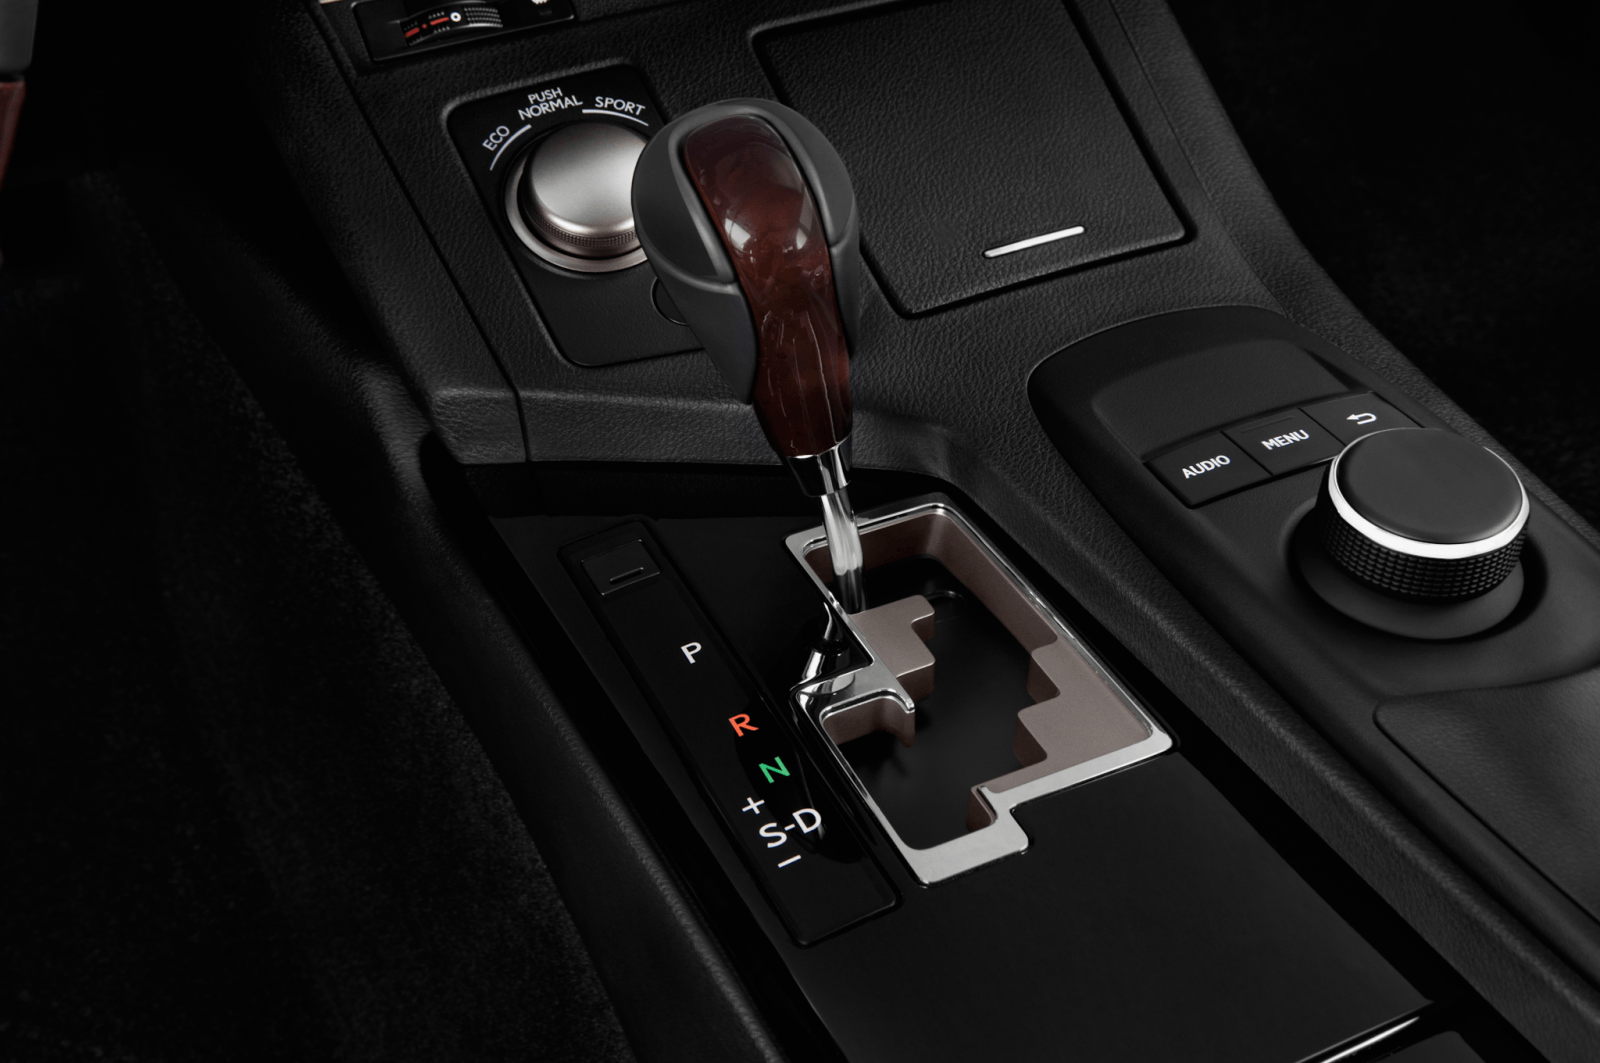 How to Fix When Automatic Transmission Won't Shift into 3rd